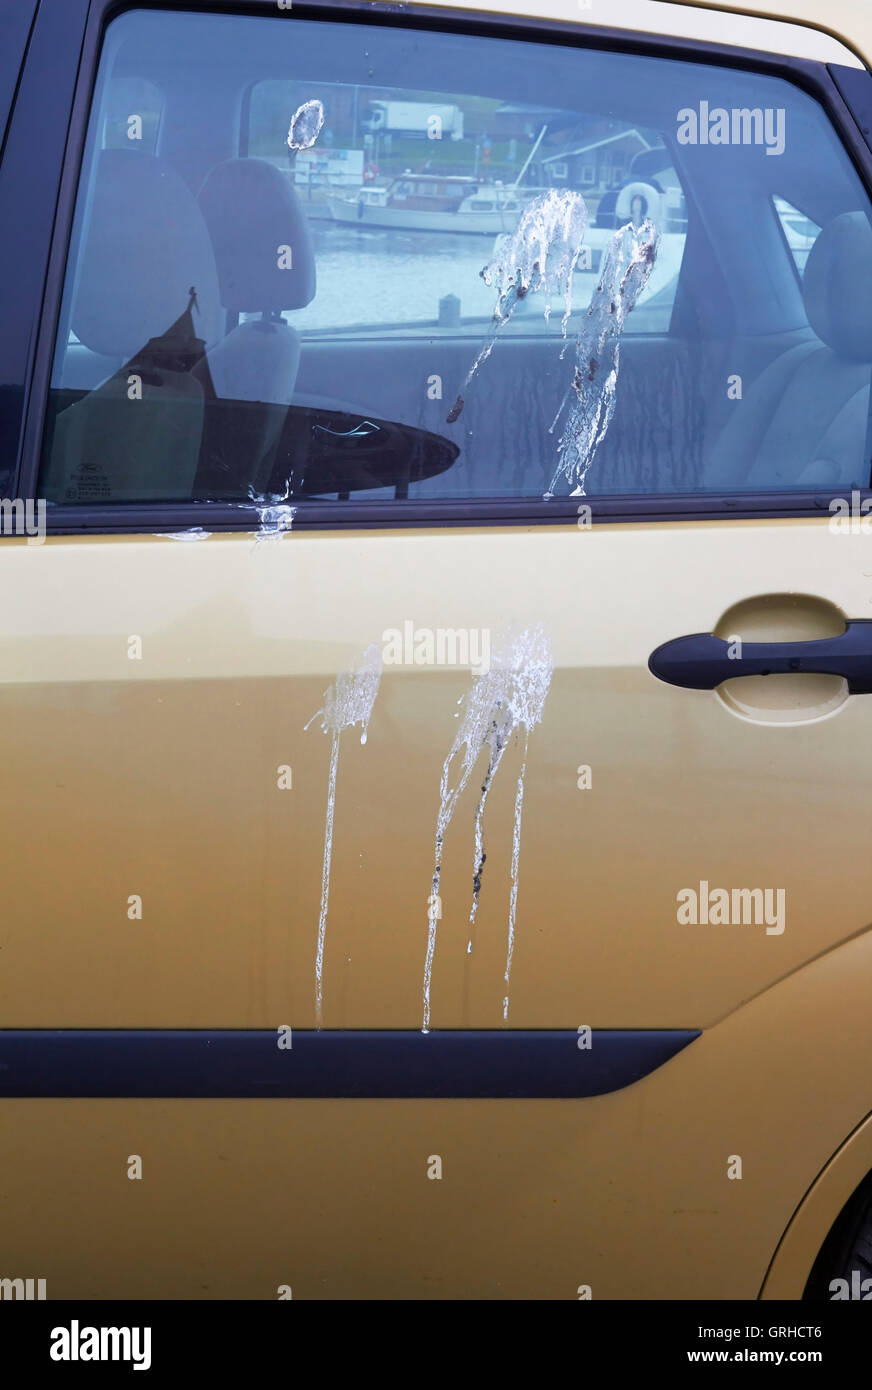 bird droppings on car - Stock Image